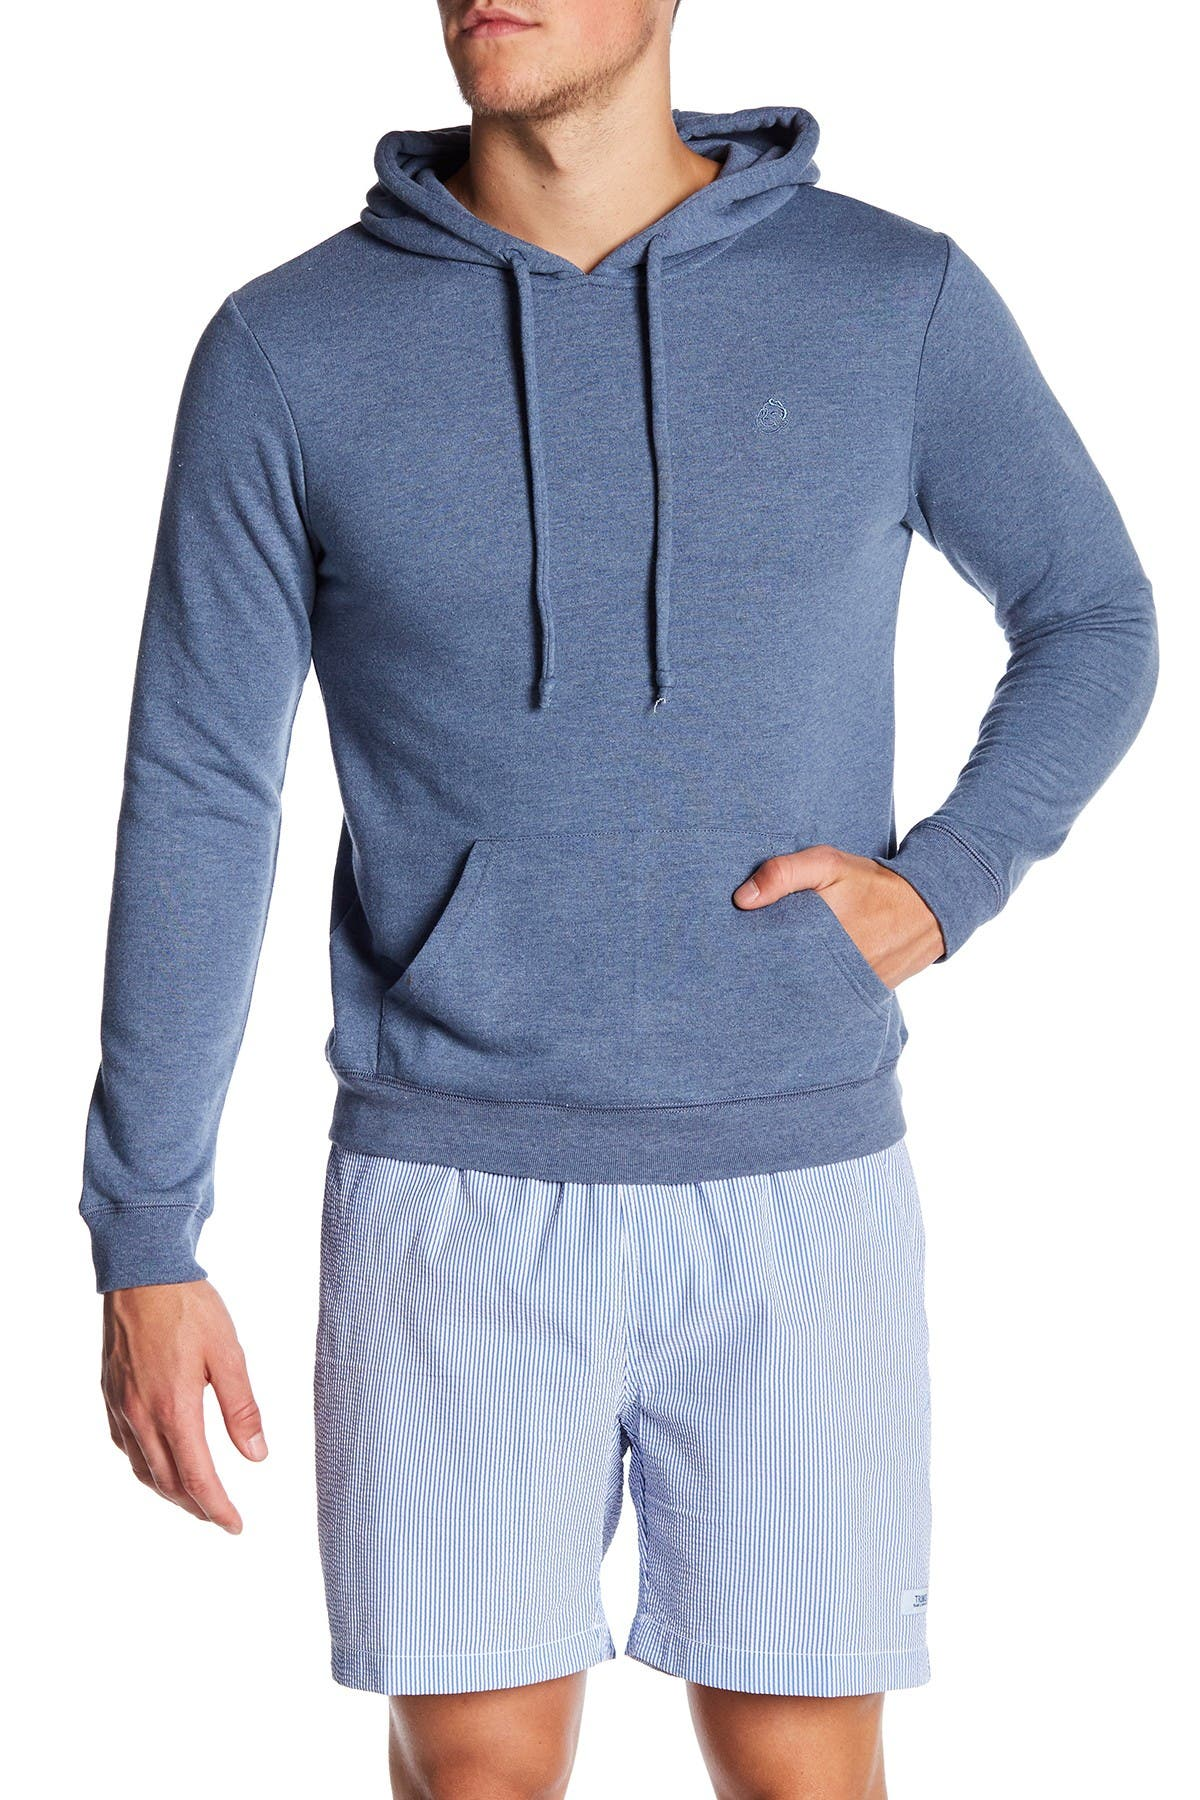 Image of Mr. Swim French Terry Pullover Hoodie